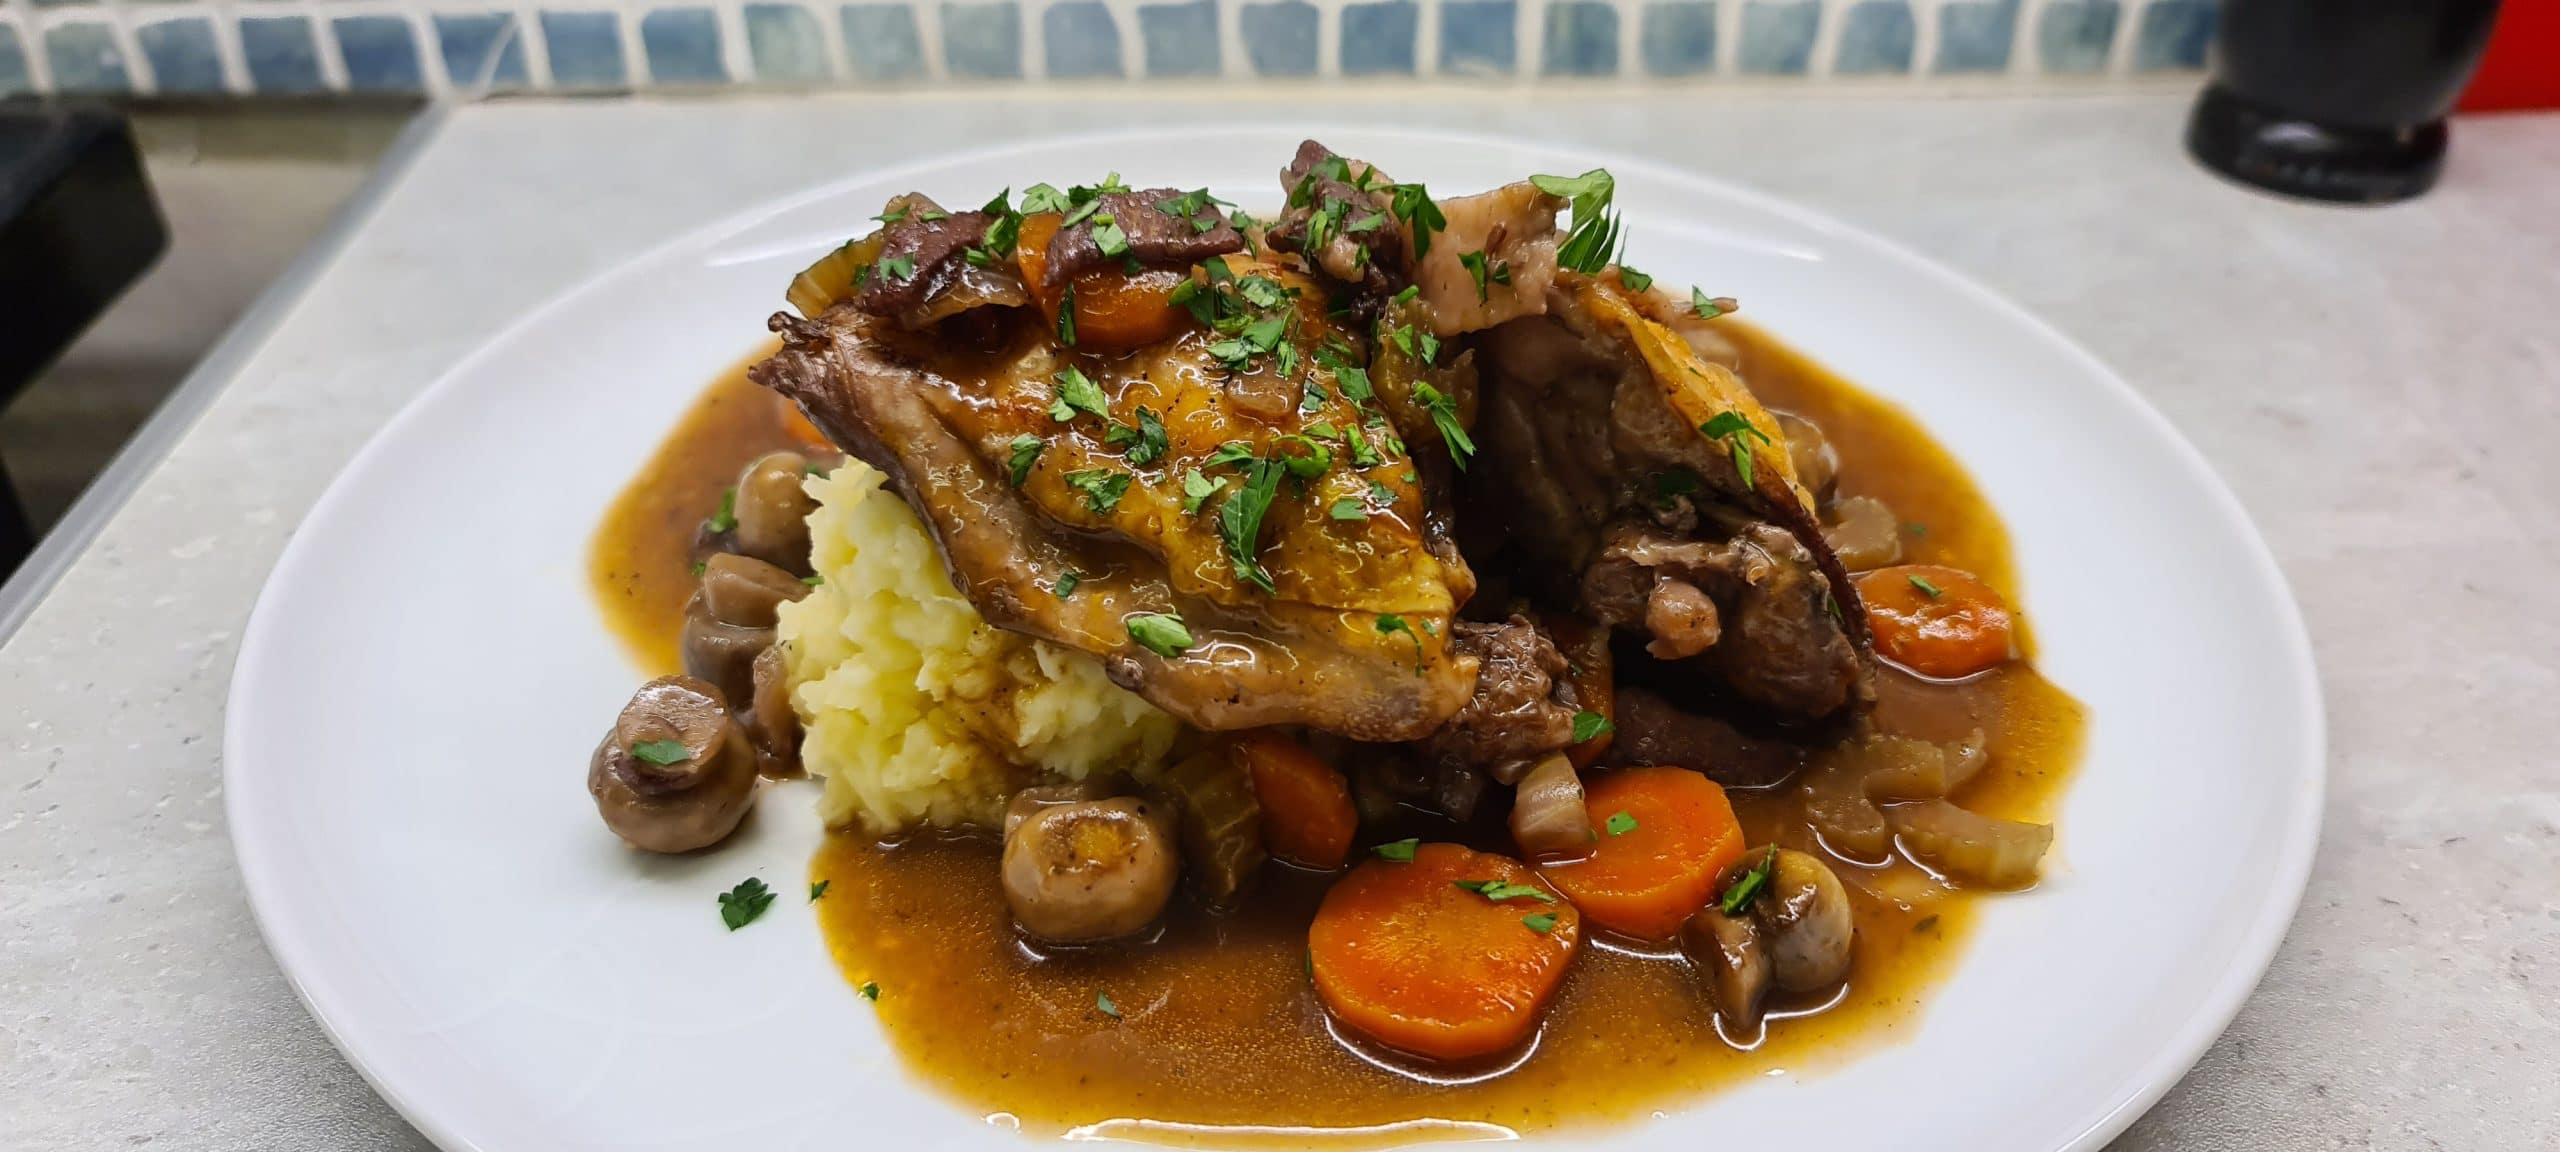 Easy Coq au Vin with Potato and Celeriac Mash